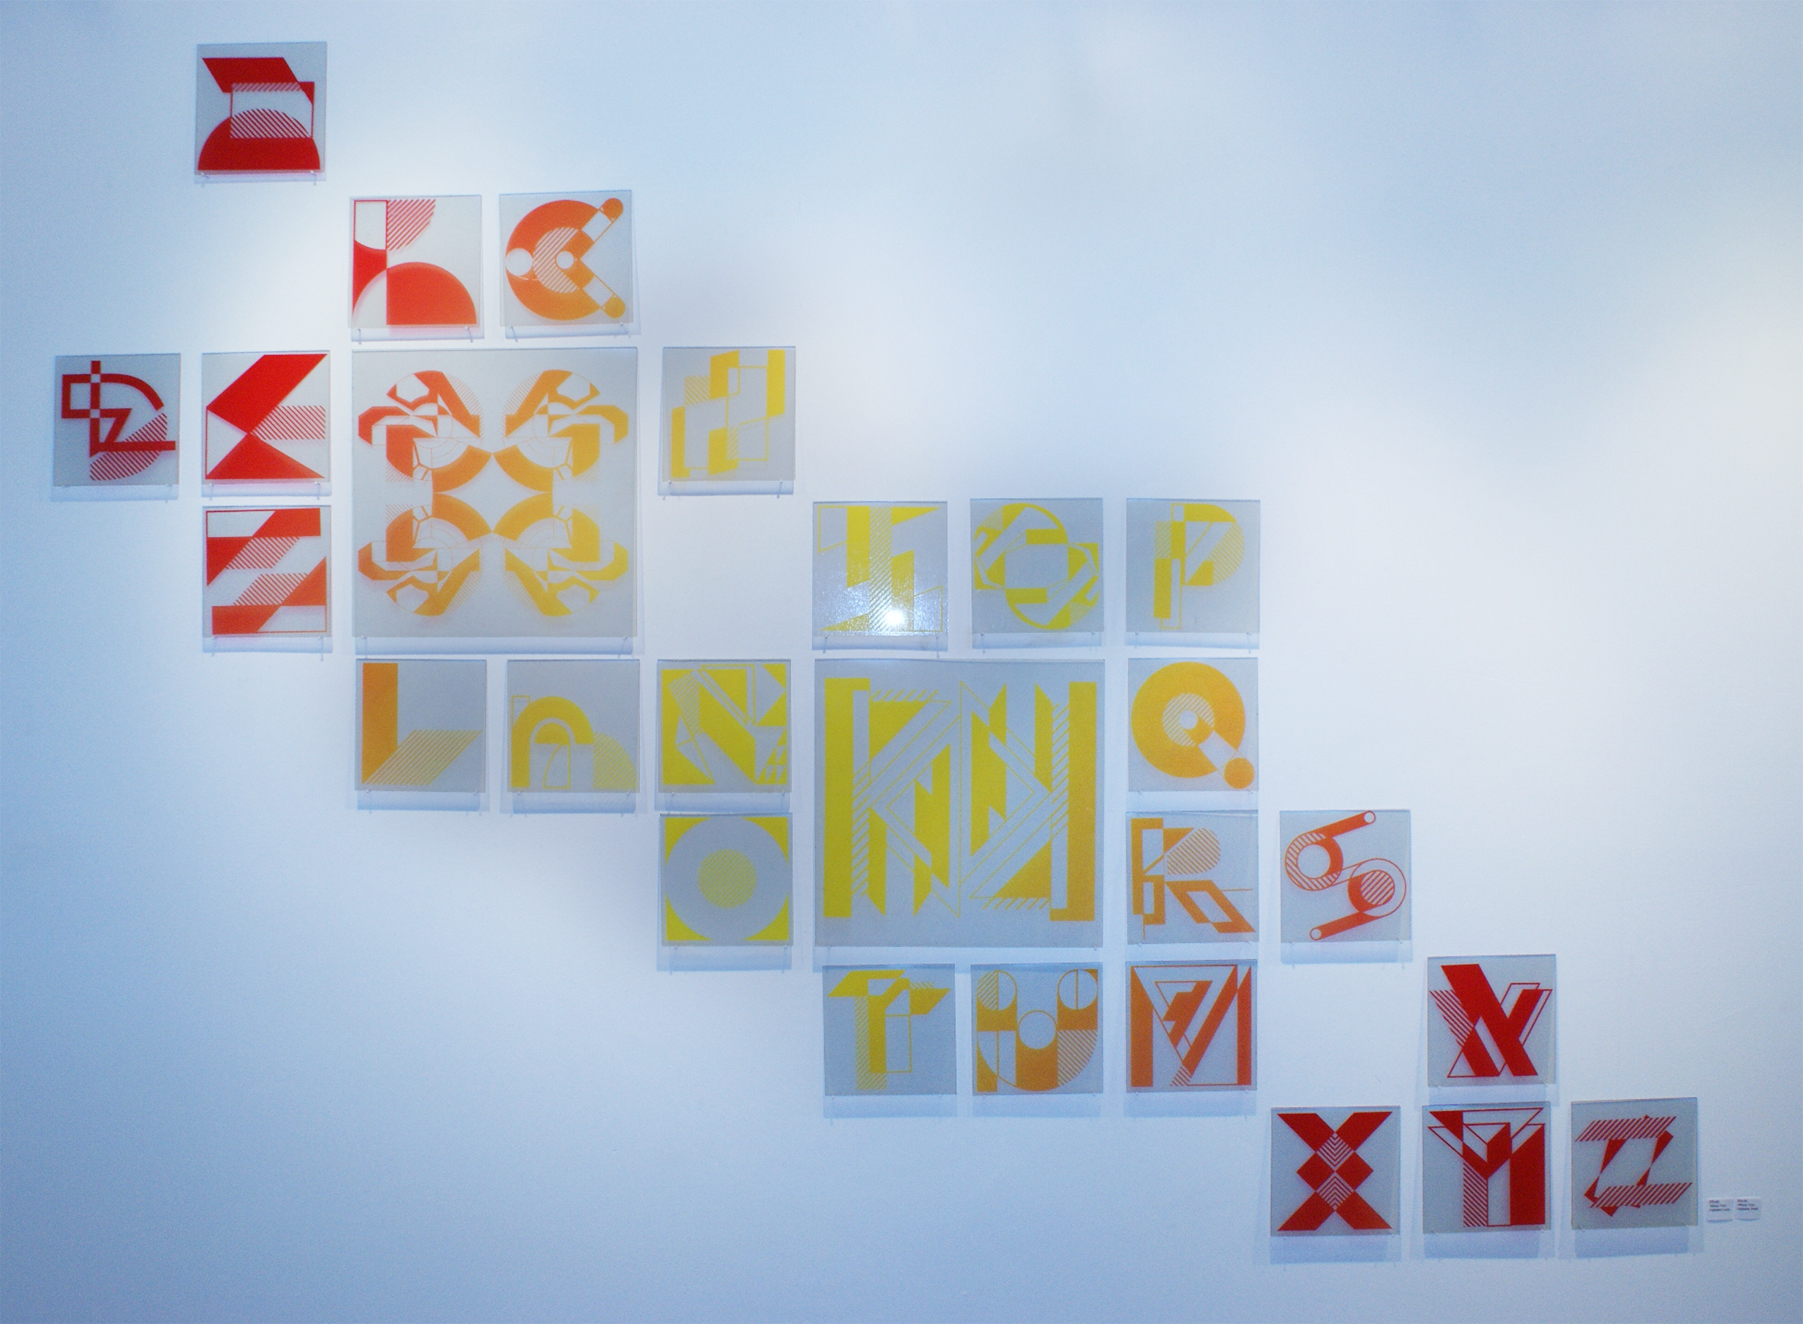 Miami Vice | Full Alphabet | 6in x 6in and 13in x 13in | Print mounted on plexi